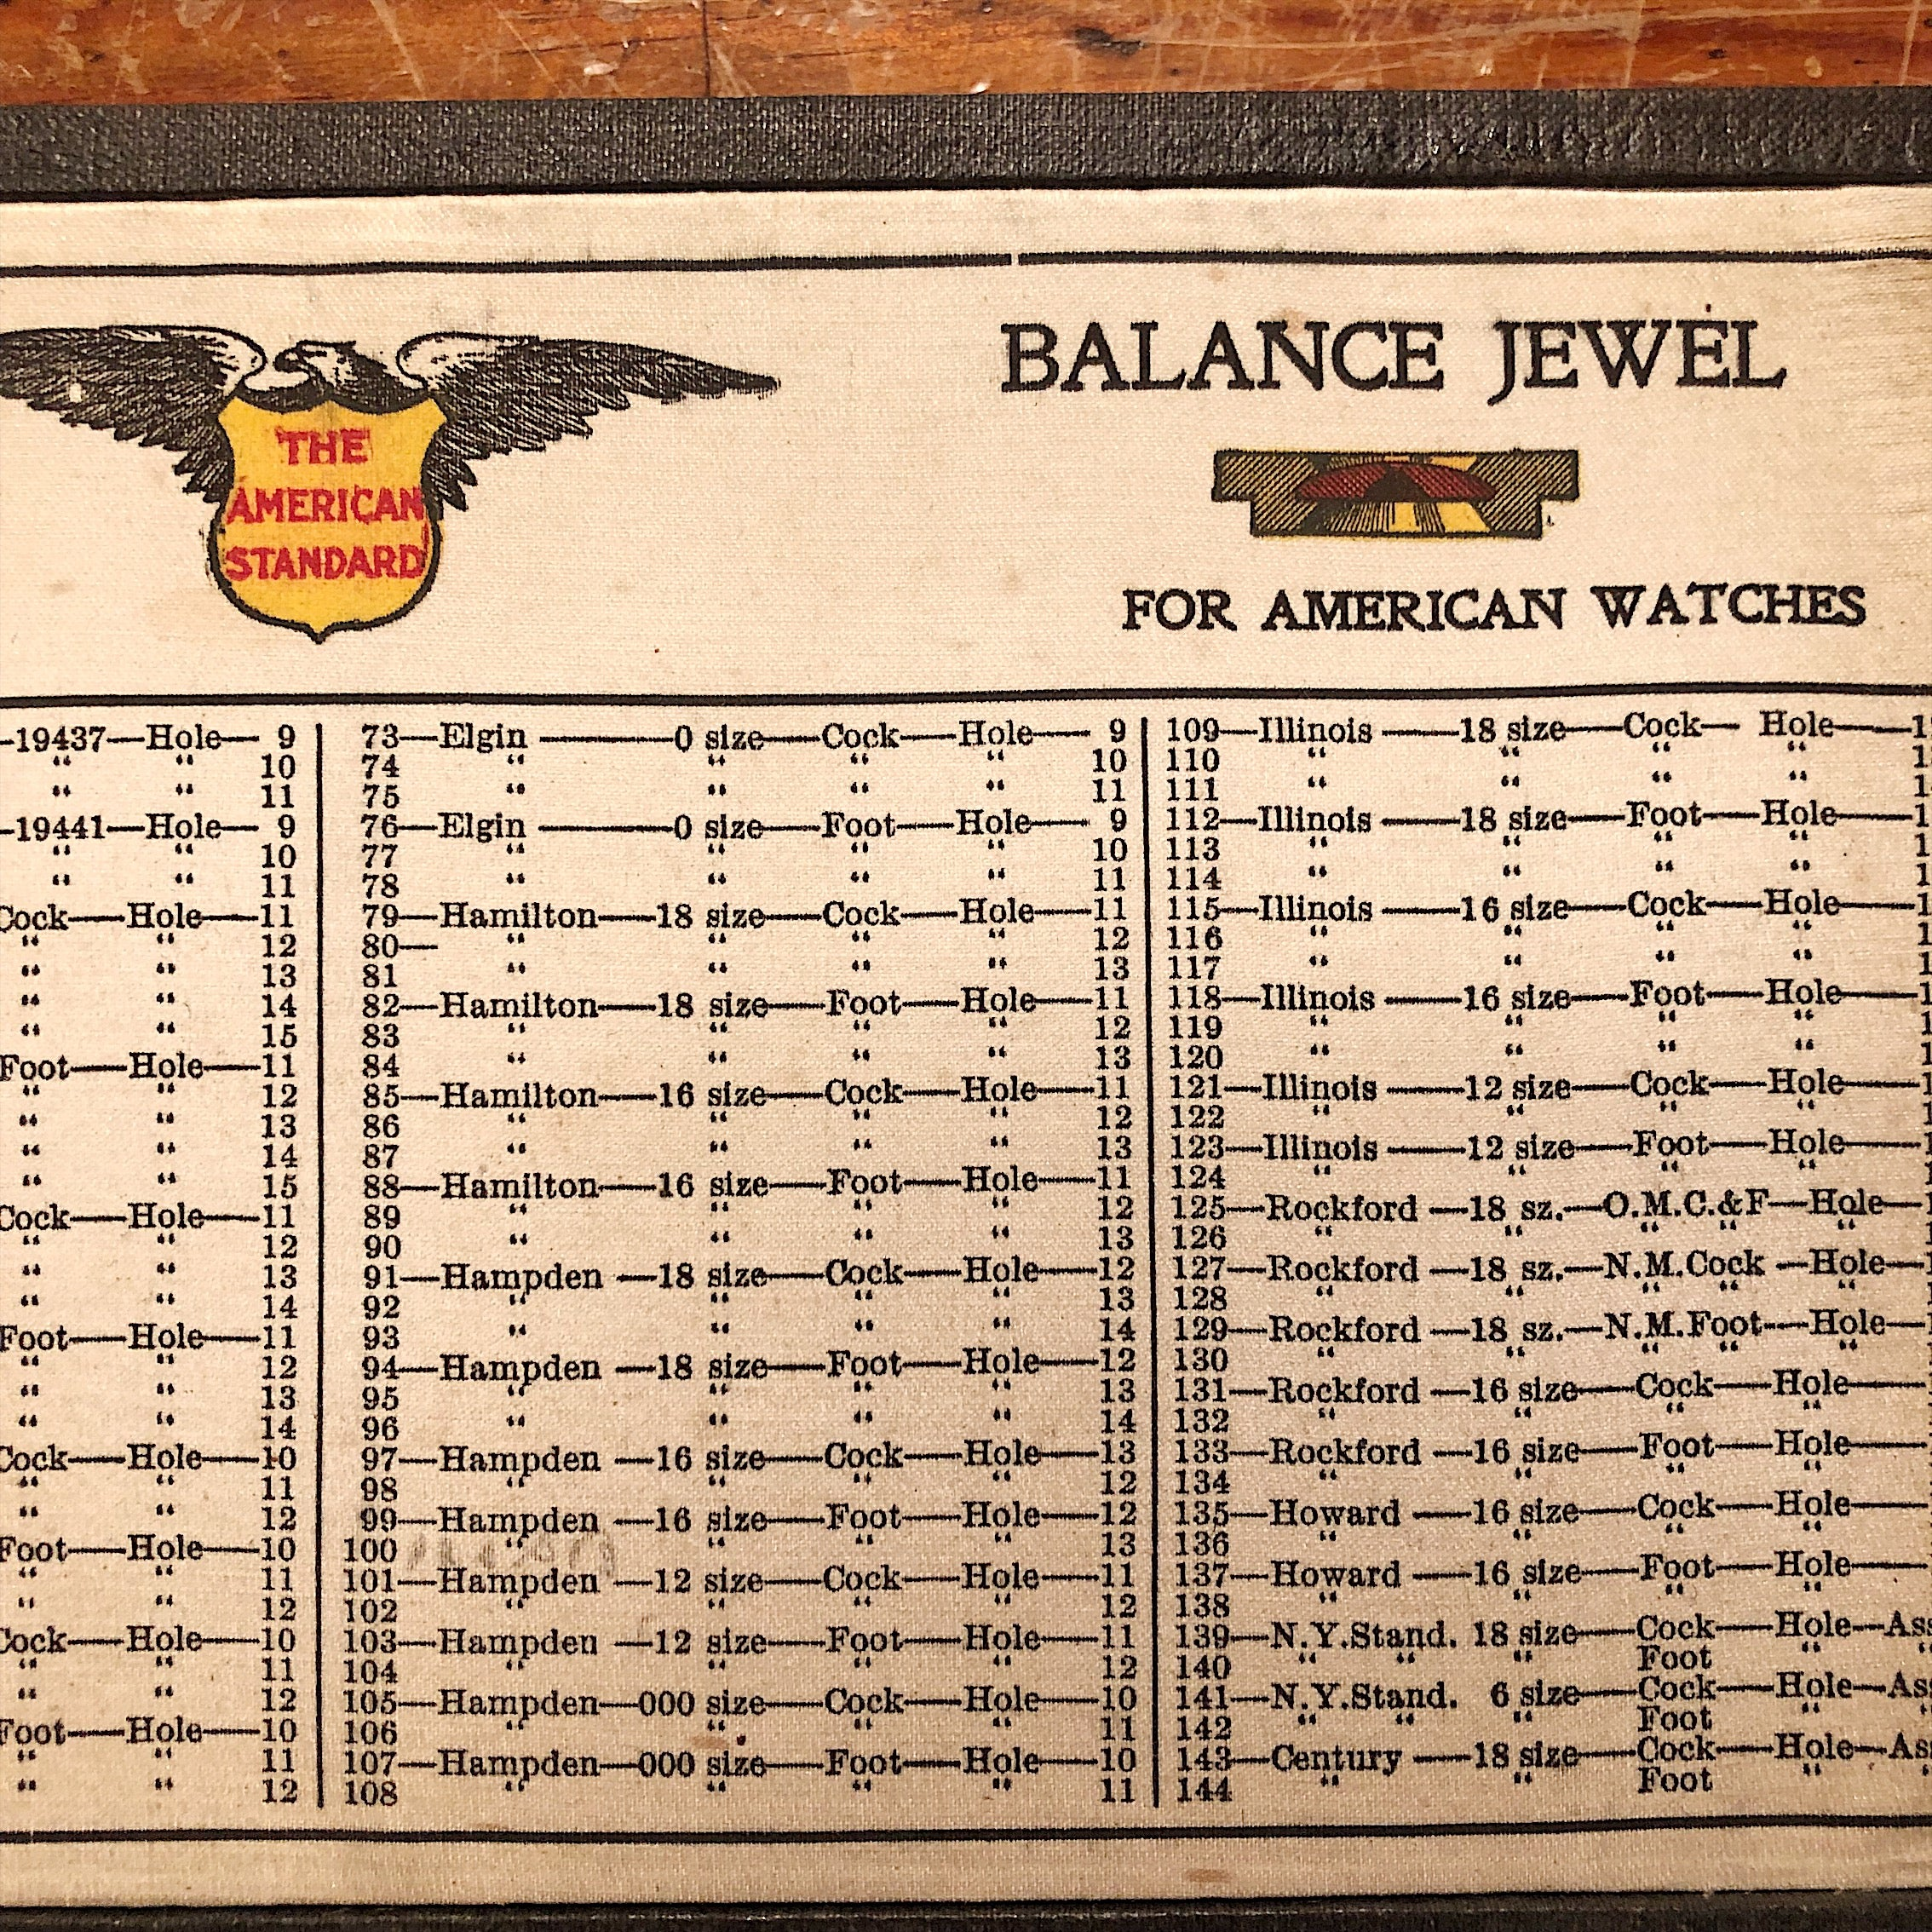 Vintage American Standard #5 Balance Jewel Watch Kit